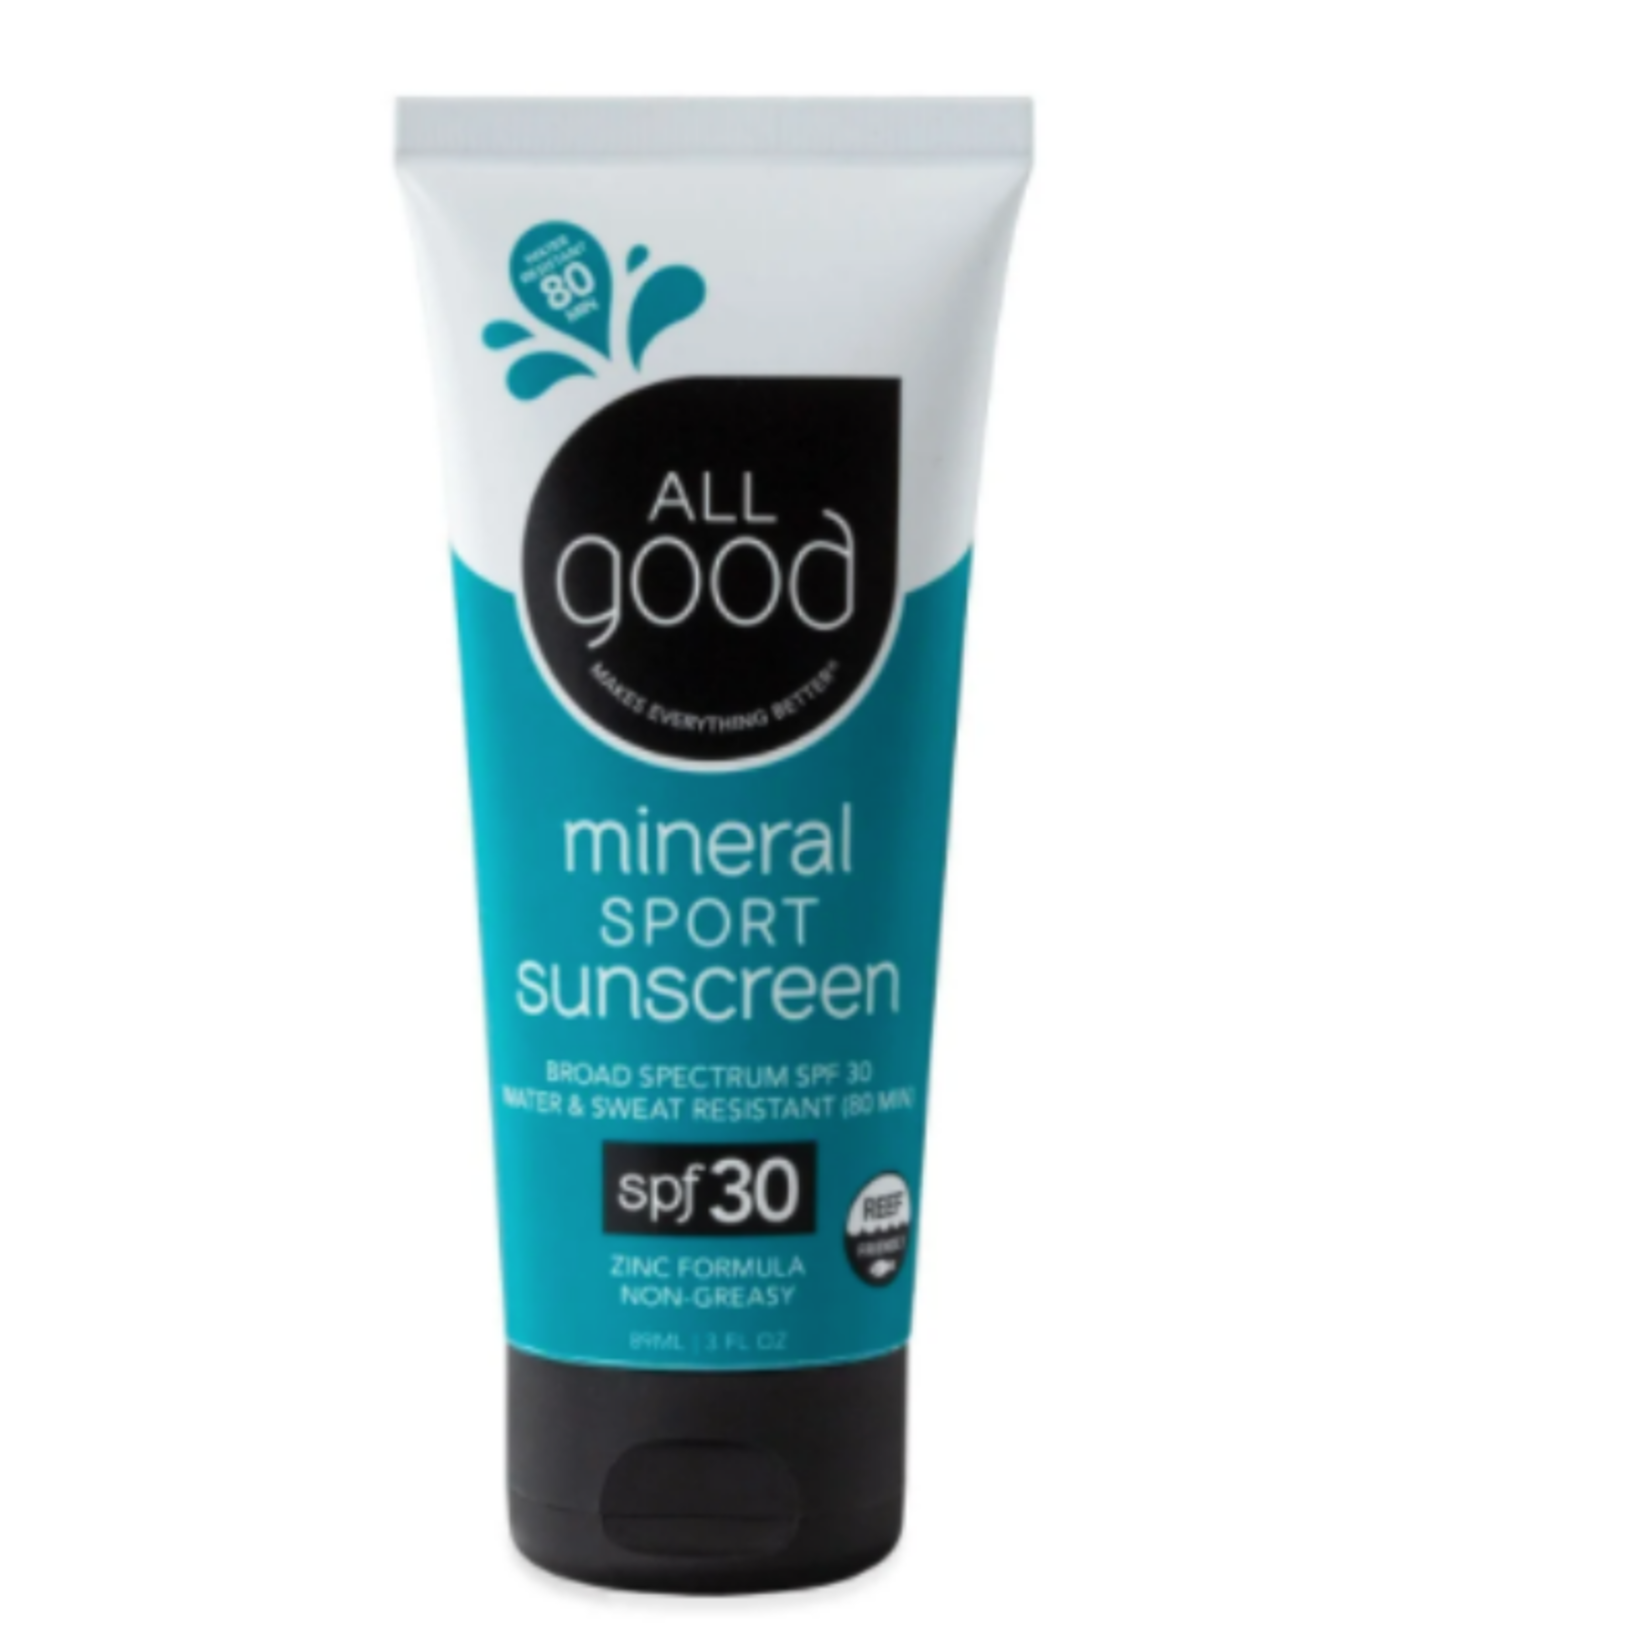 All Good SPF 30 Sport Mineral Sunscreen Lotion, 3 oz.